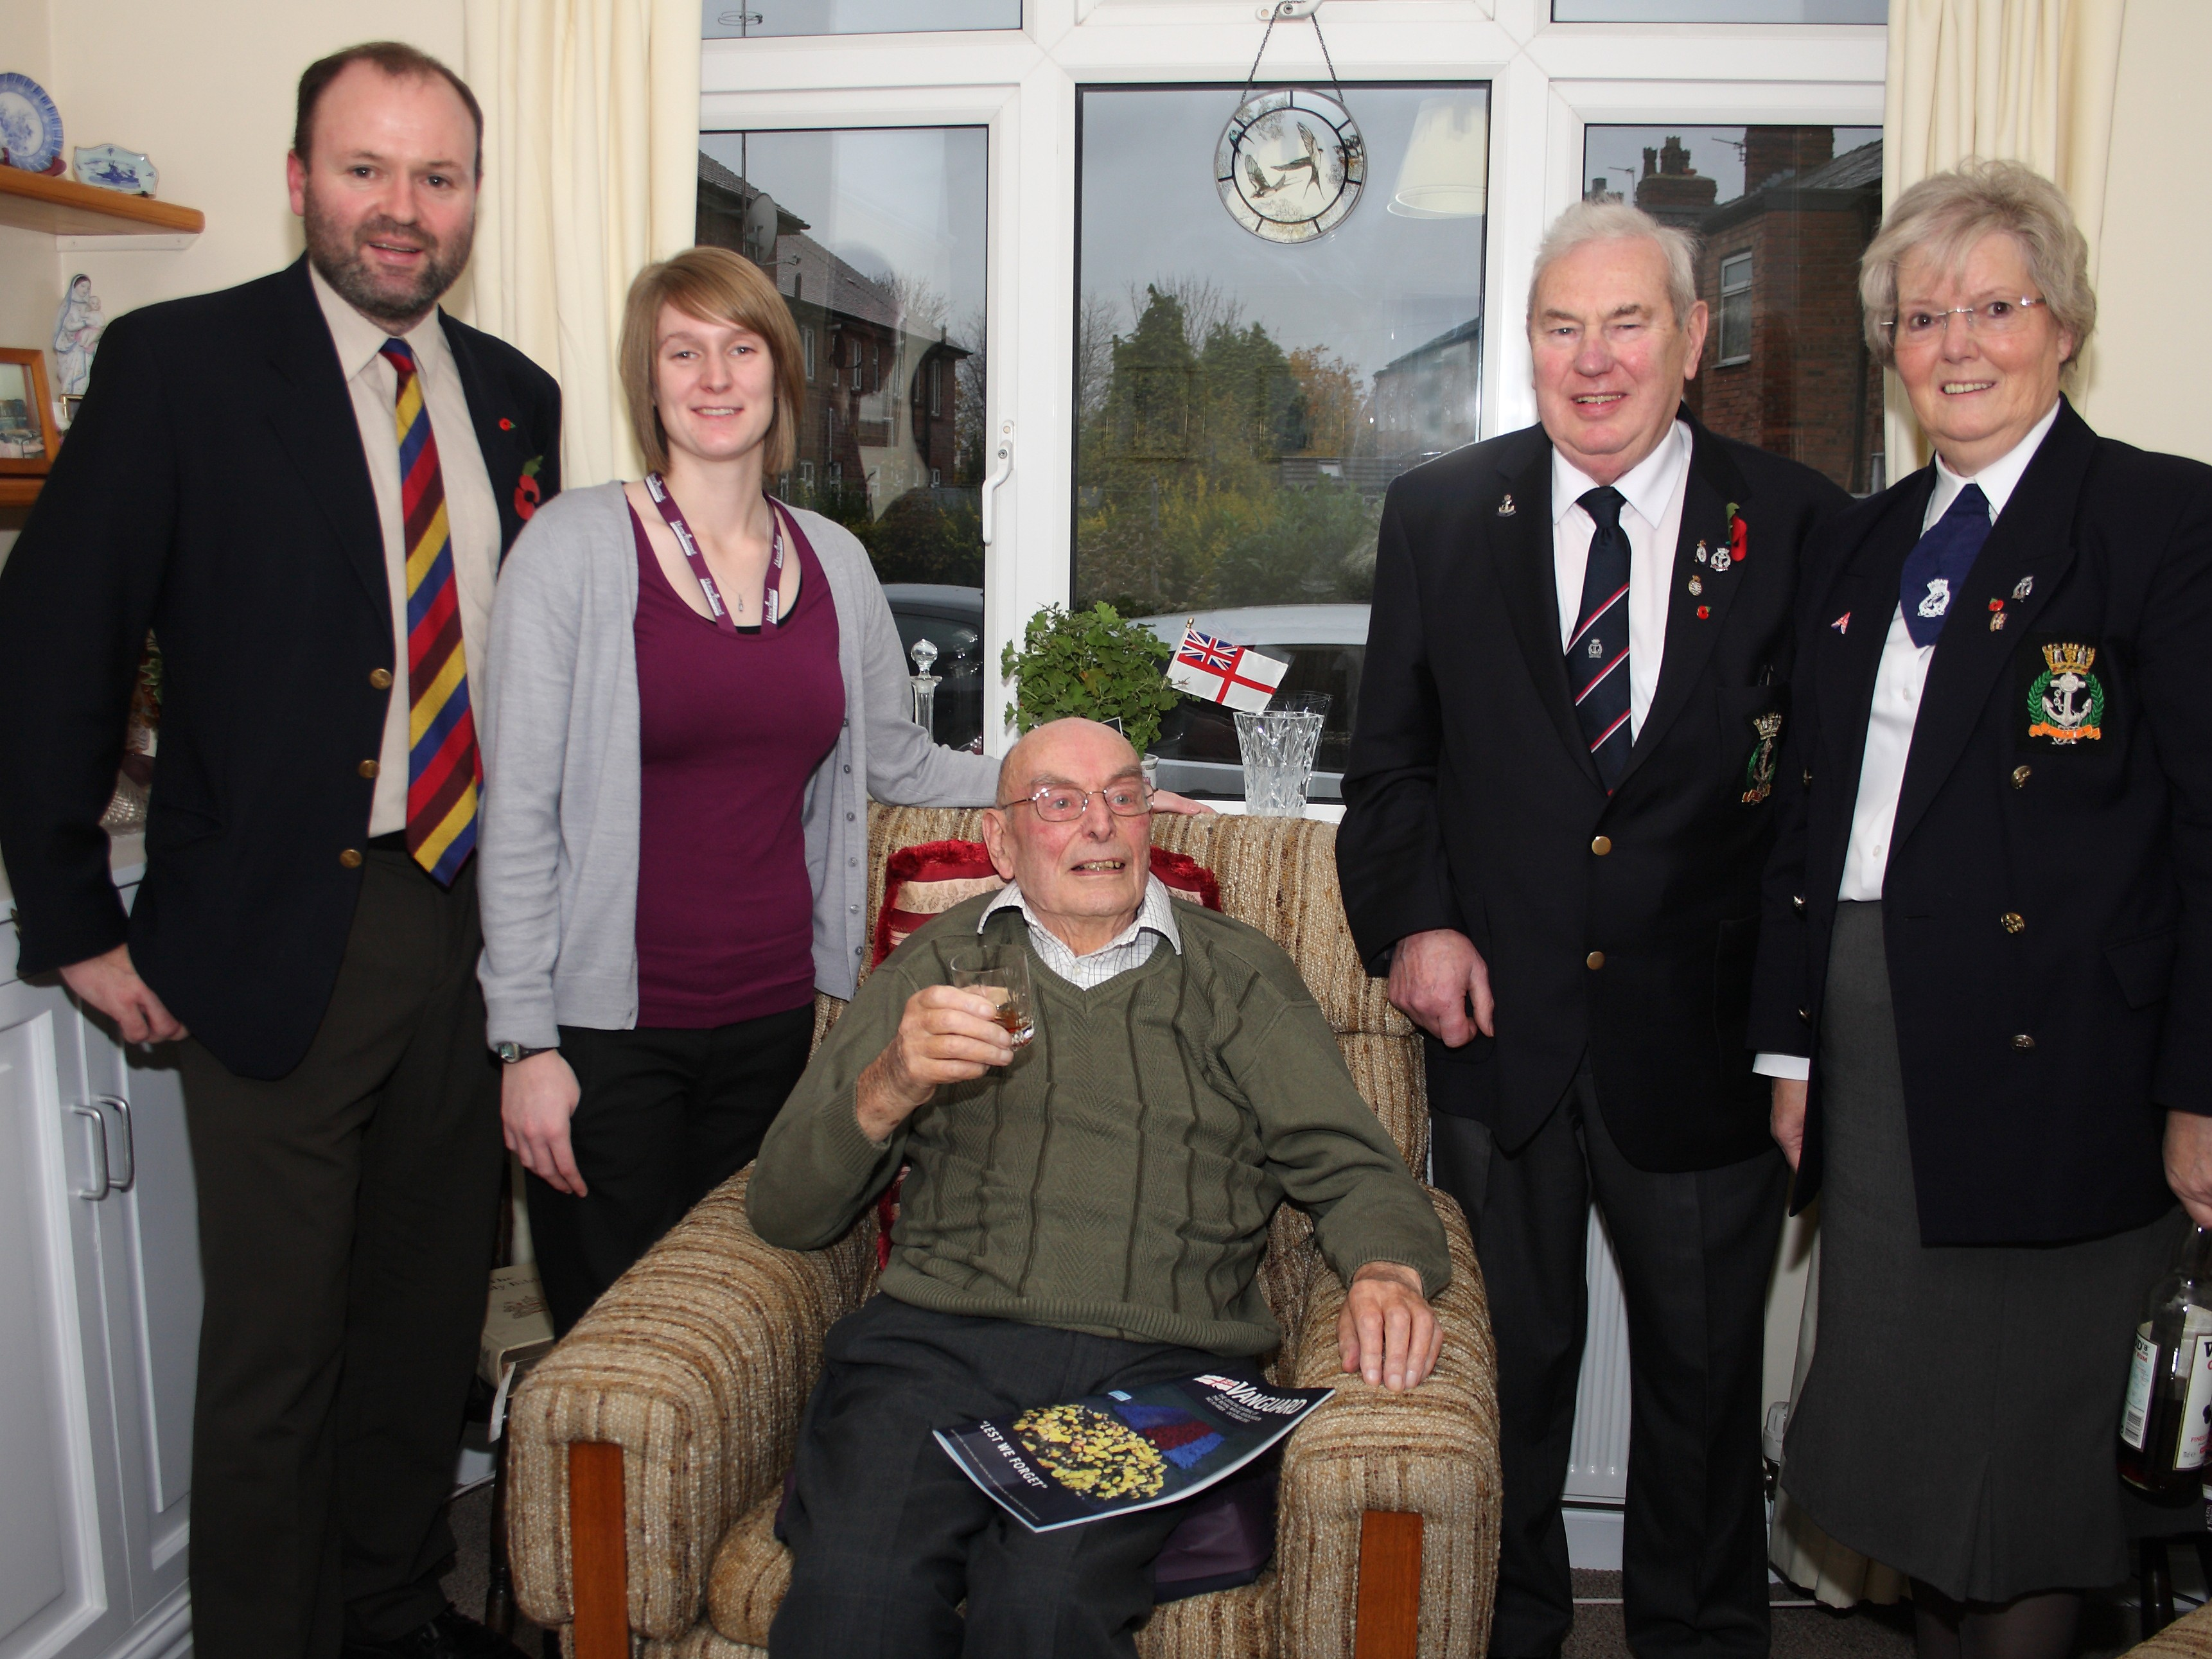 Home Instead Altrincham owner Alan Savage and team member Holly Brownlee, 88-year-old client Doug Barman and Trafford Royal Naval Association members Charles Hutton and Diana Hutton